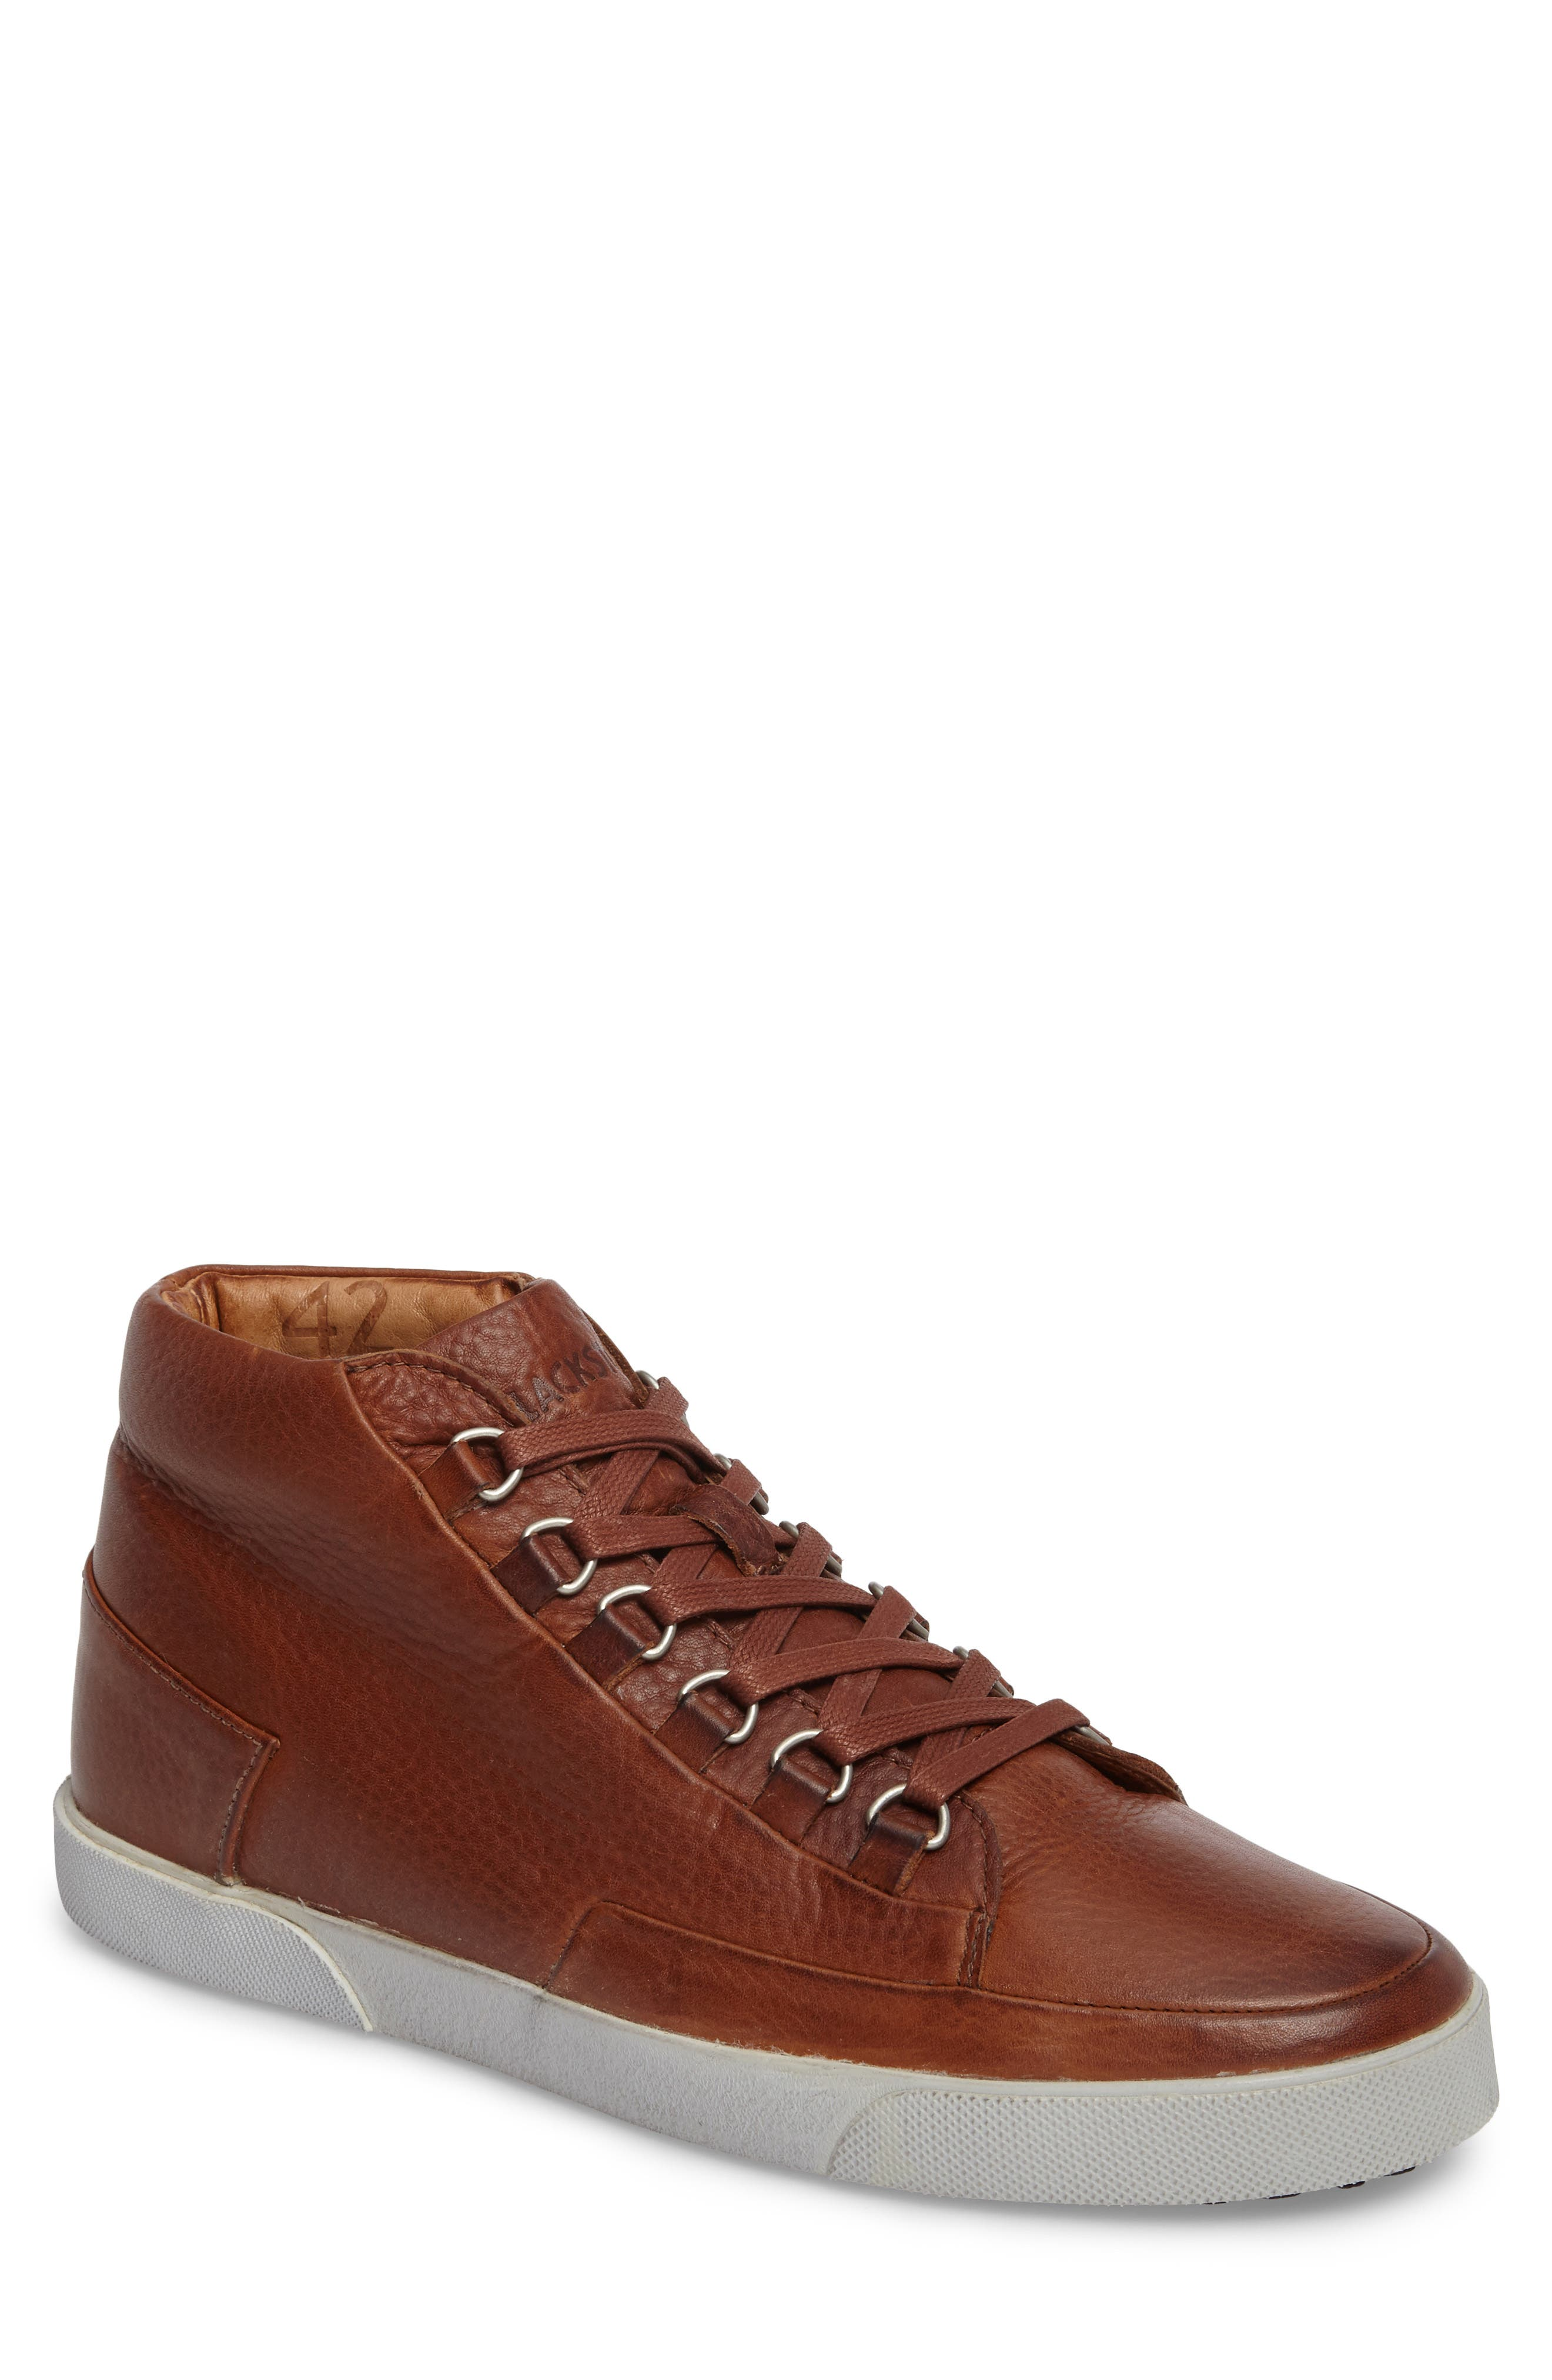 Blackstone KM 02 Sneaker with Genuine Shearling Lining (Men)